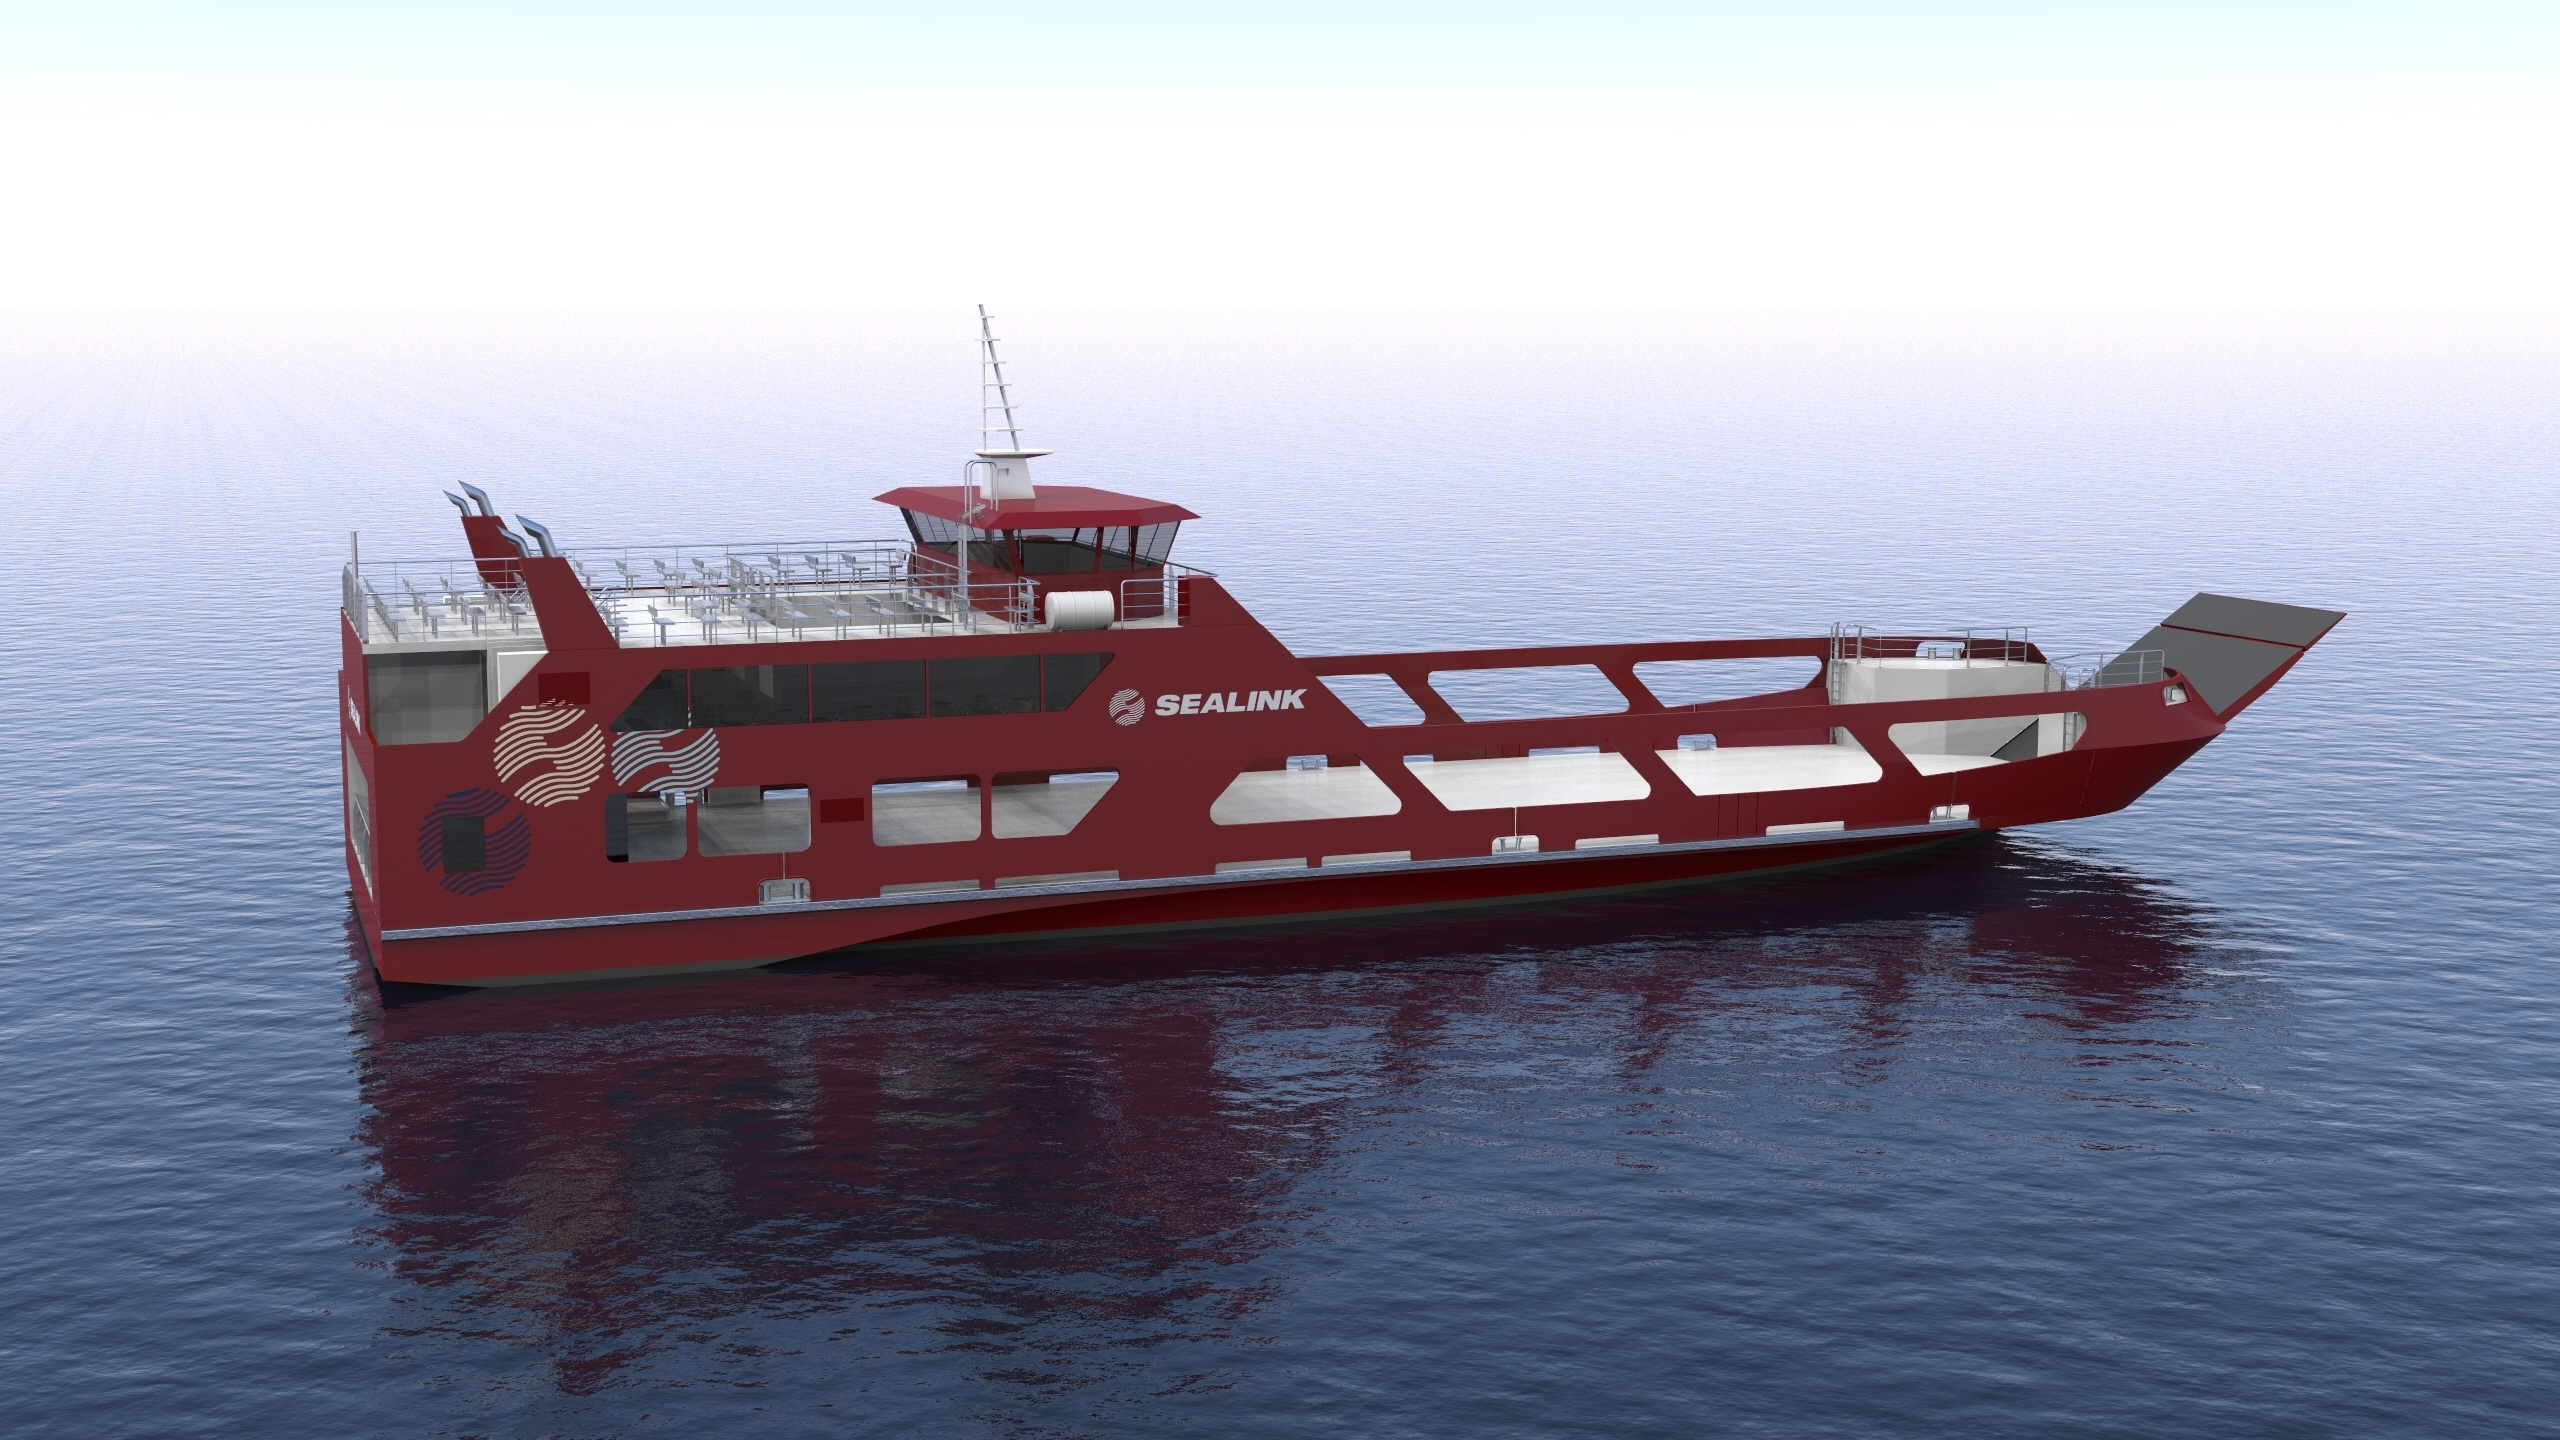 sealink ropax ferry render overall view starboard midship view